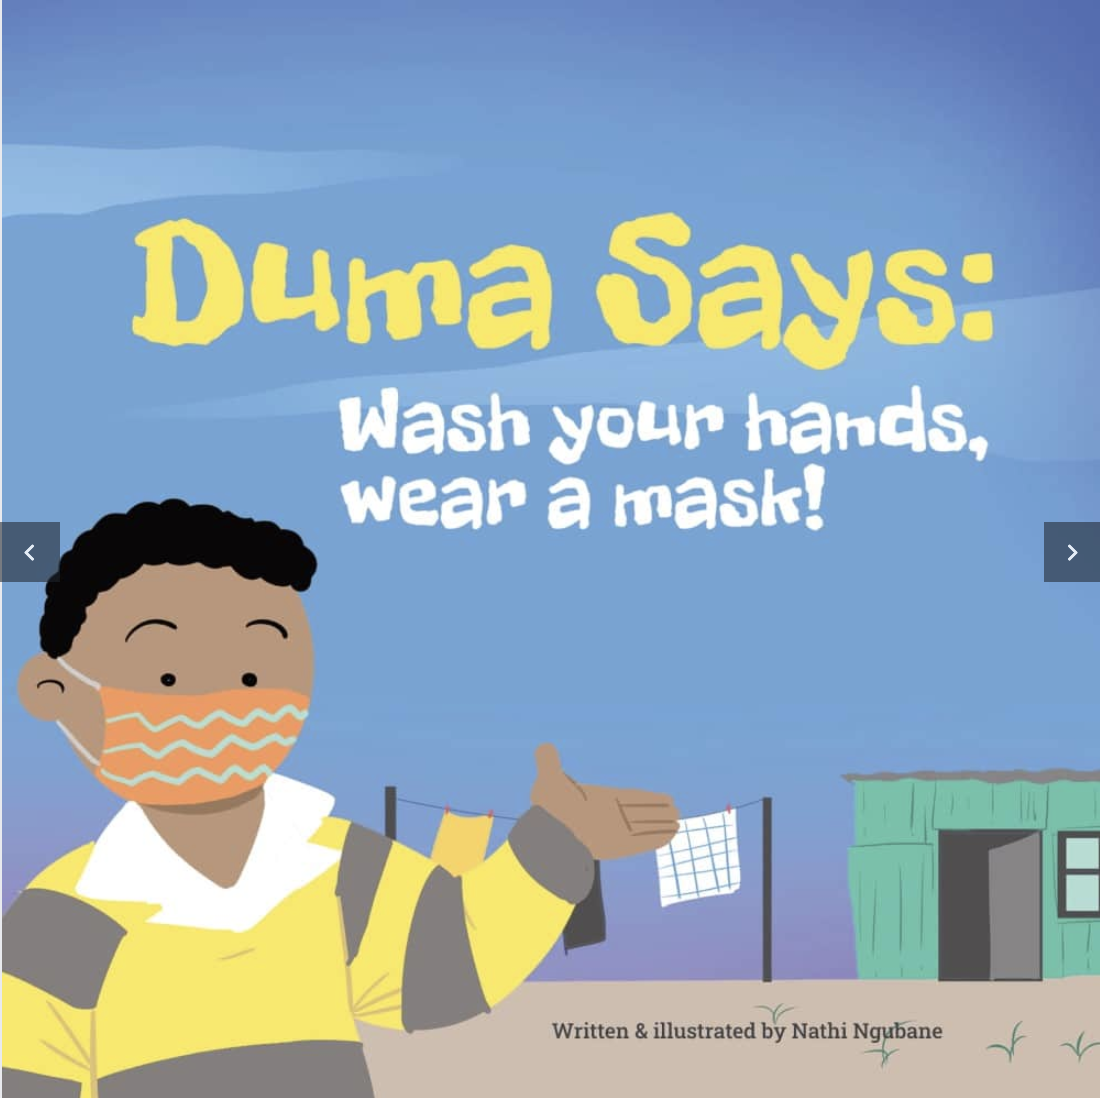 Duma says: Wash your hands, wear a mask!